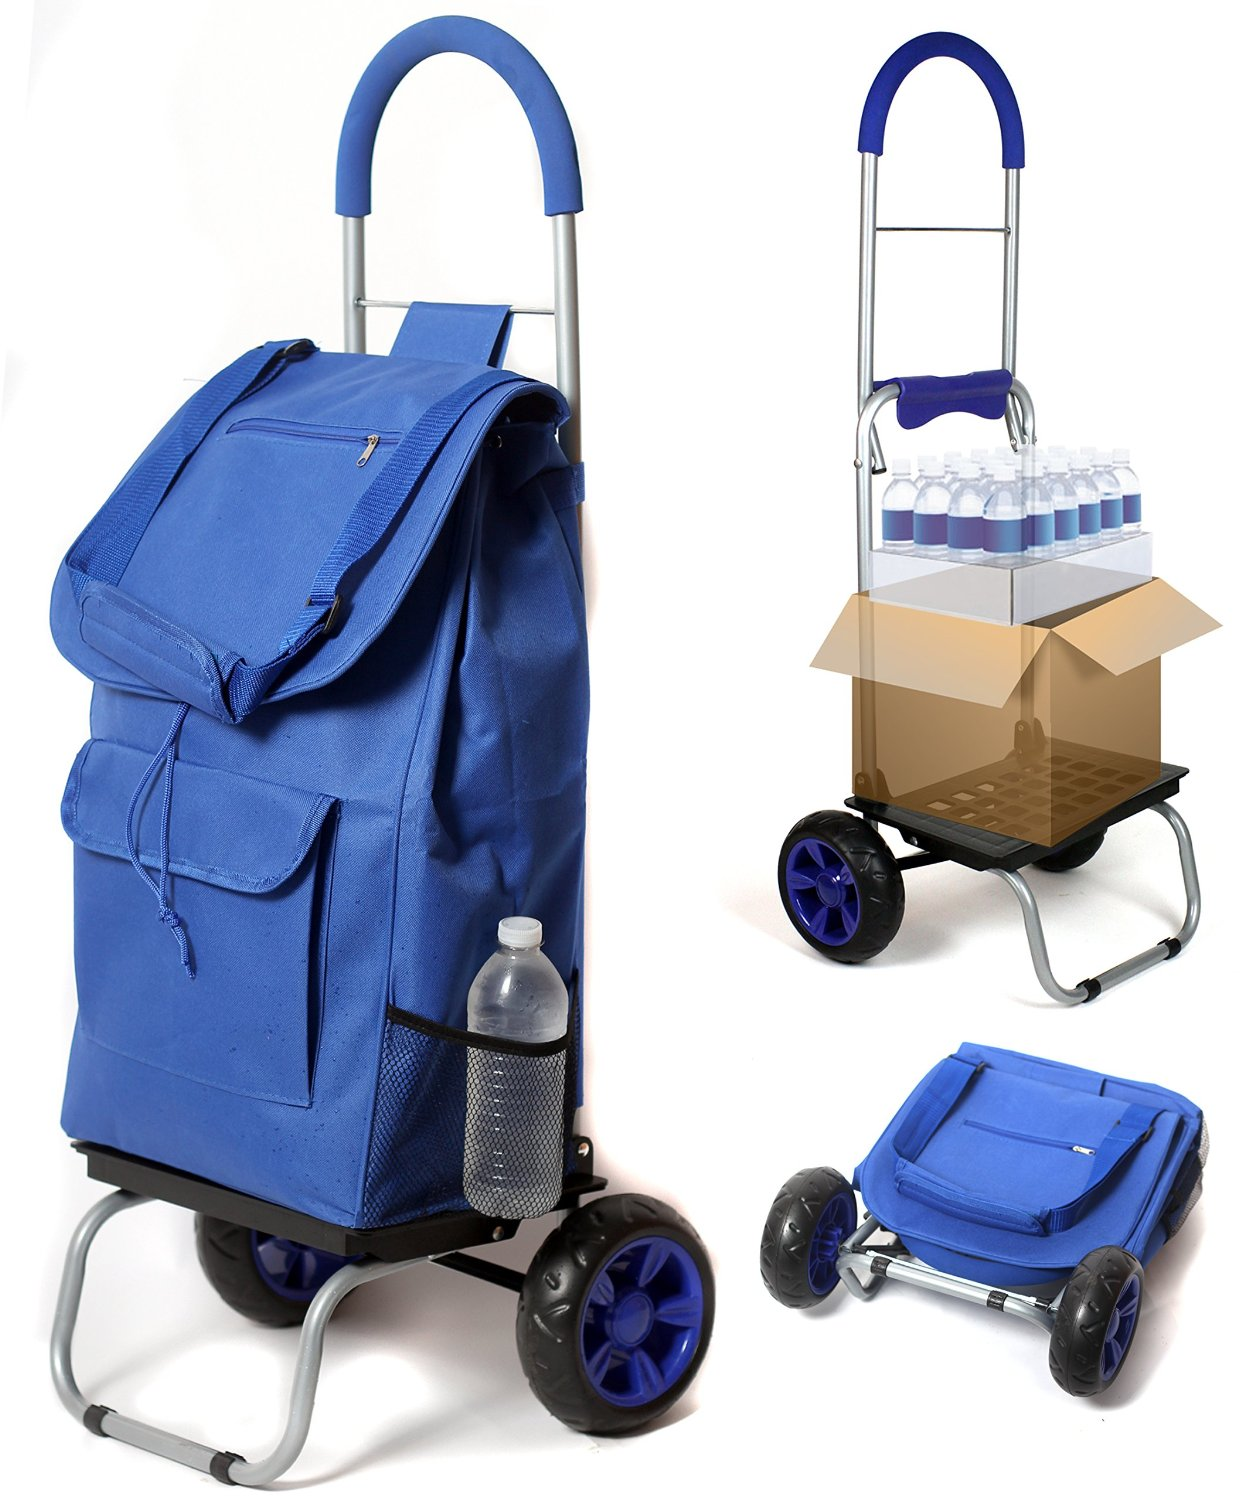 dbest Products Grocery Trolley Dolly